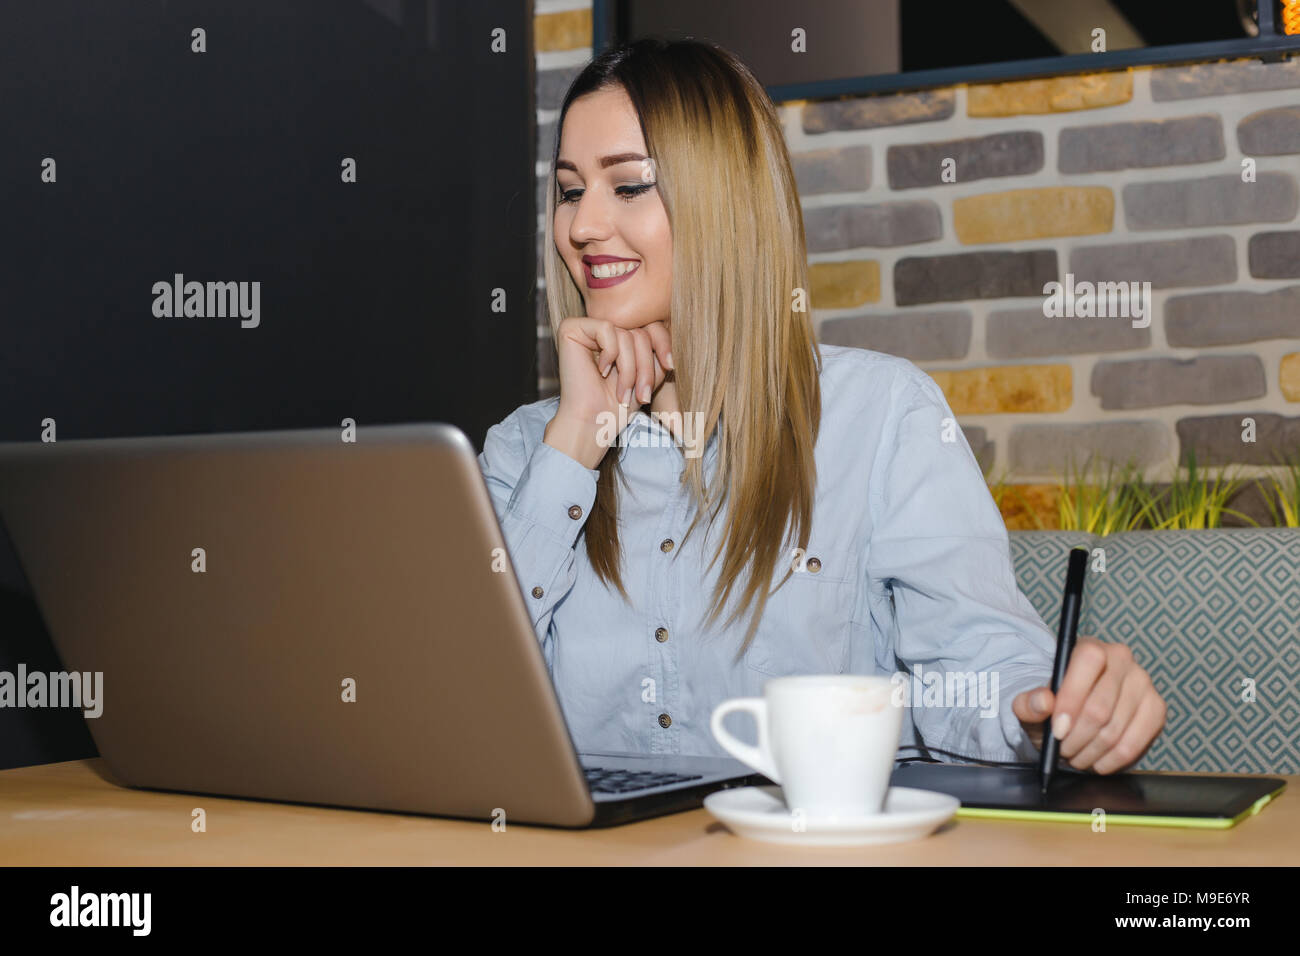 Graphic designer sitting at table in cafe and  using digital tablet and computer tools working on a new project. - Stock Image